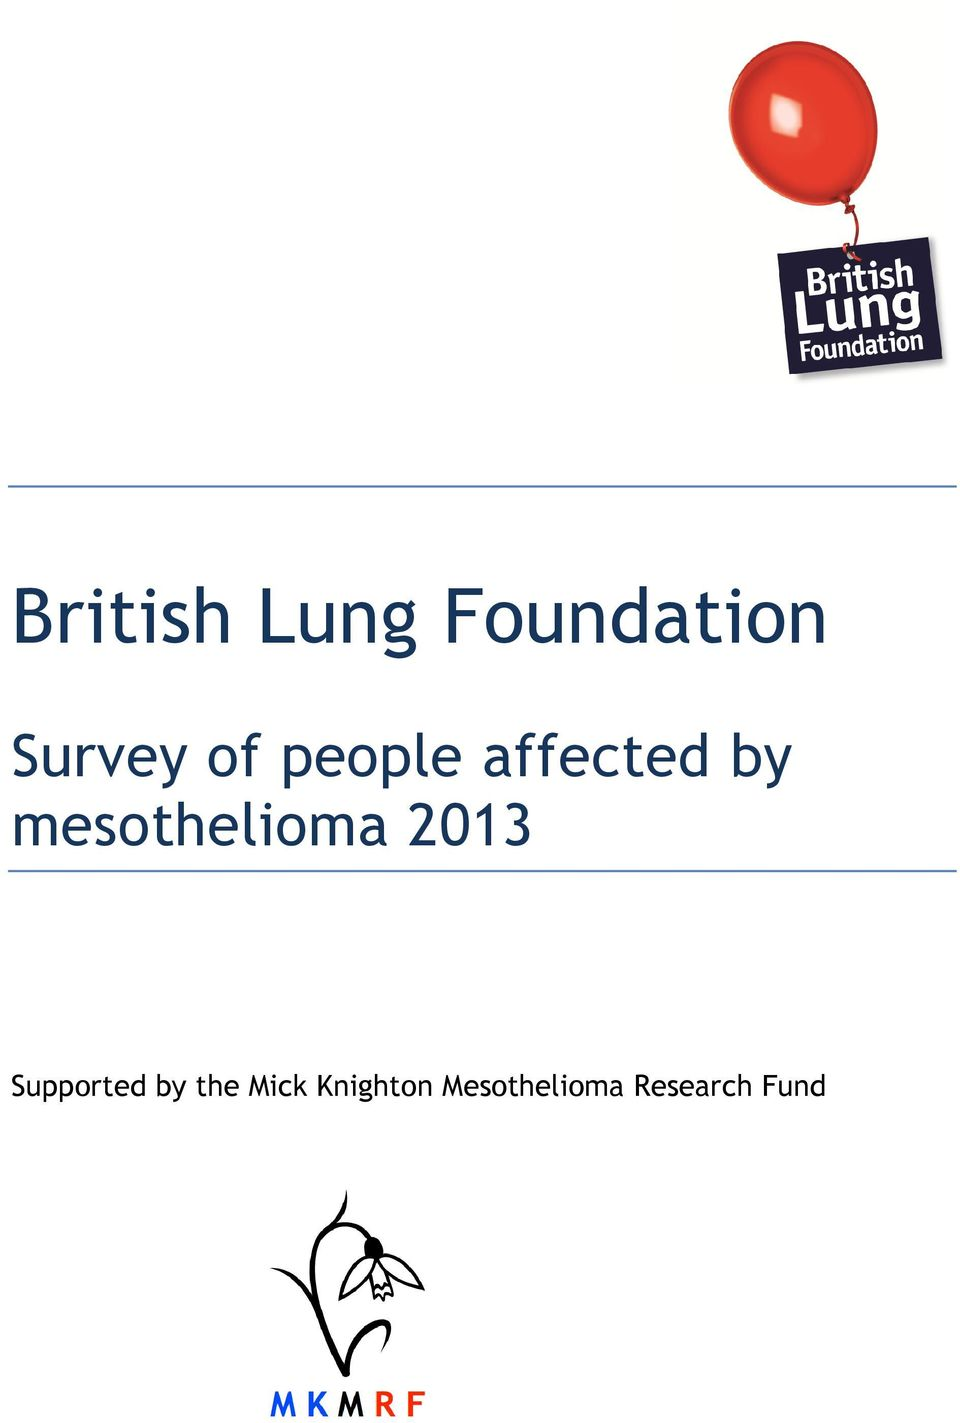 mesothelioma 2013 Supported by